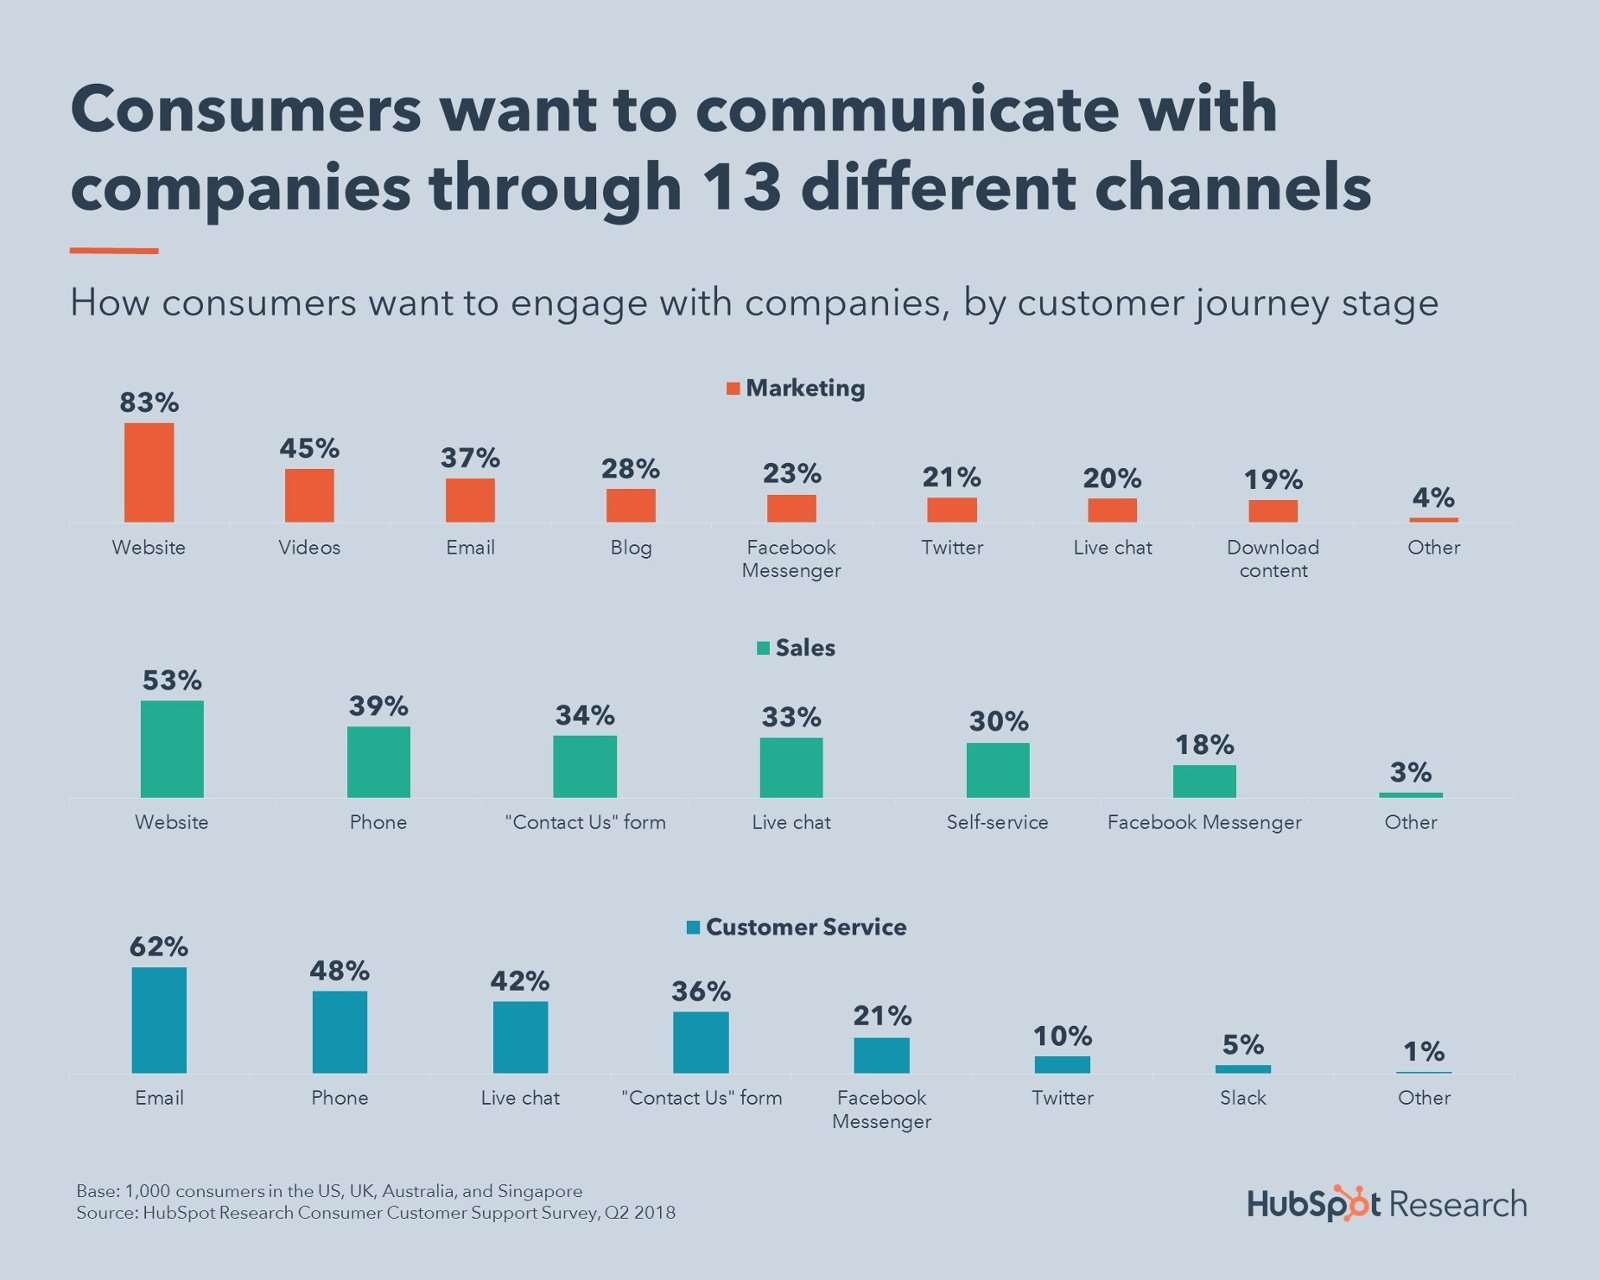 Consumers want to communicate with companies through 13 different channels